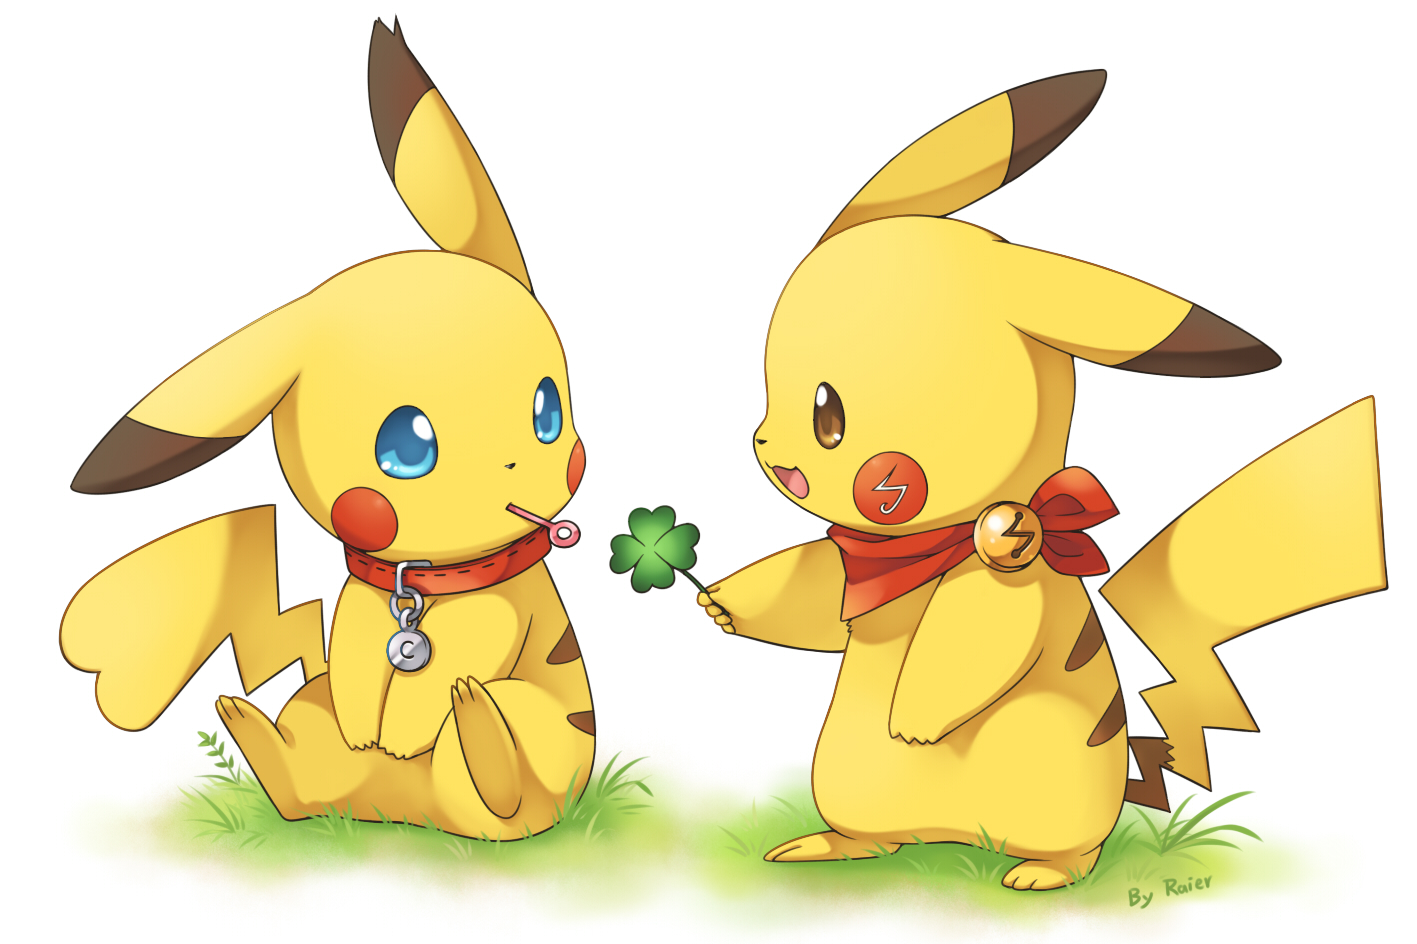 Sear the Believing Pikachu and Arrow the Tailless Pikachu || (Inactive) Pikachu.full.1568253